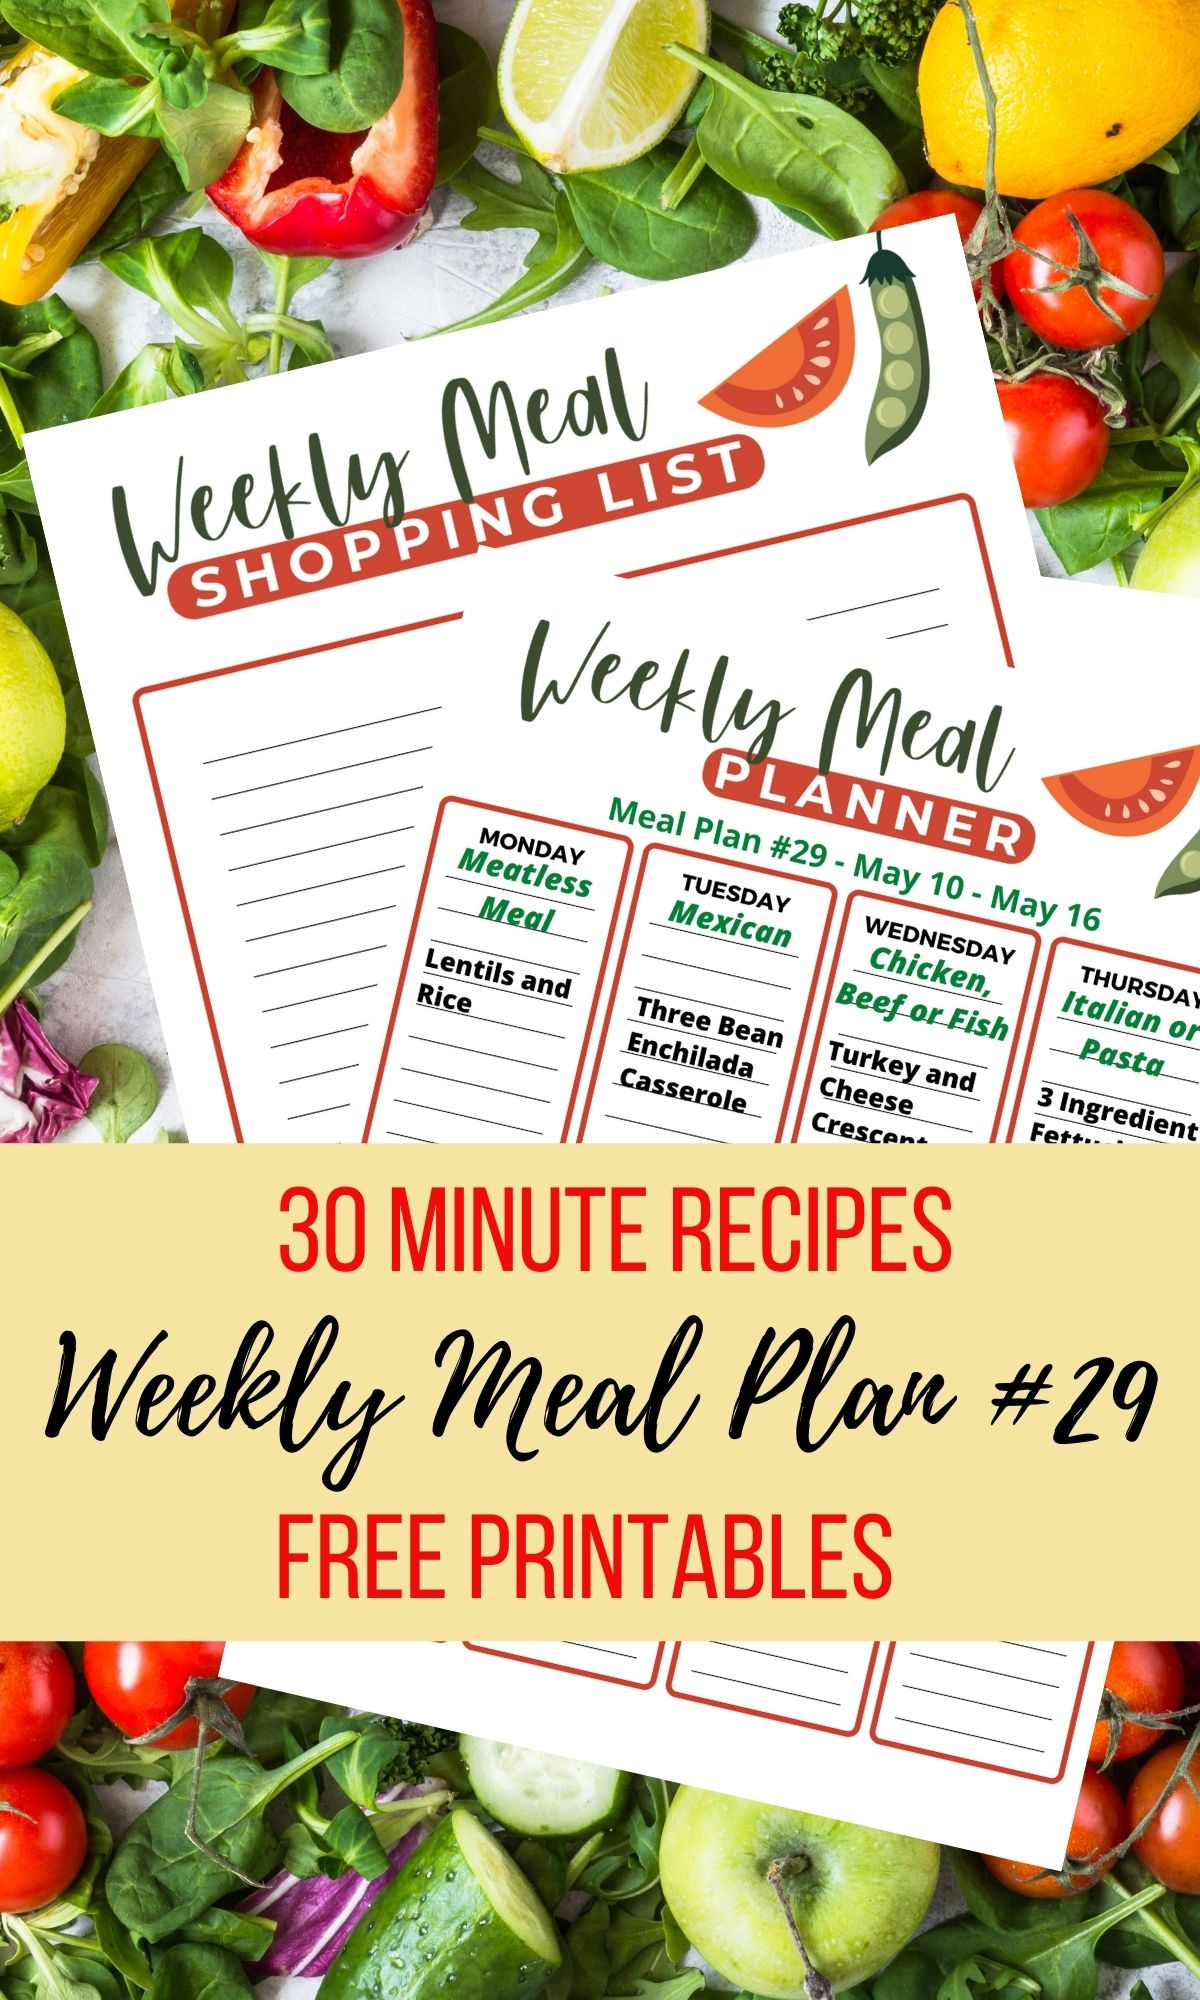 30 minute meals to help with dinner this week.